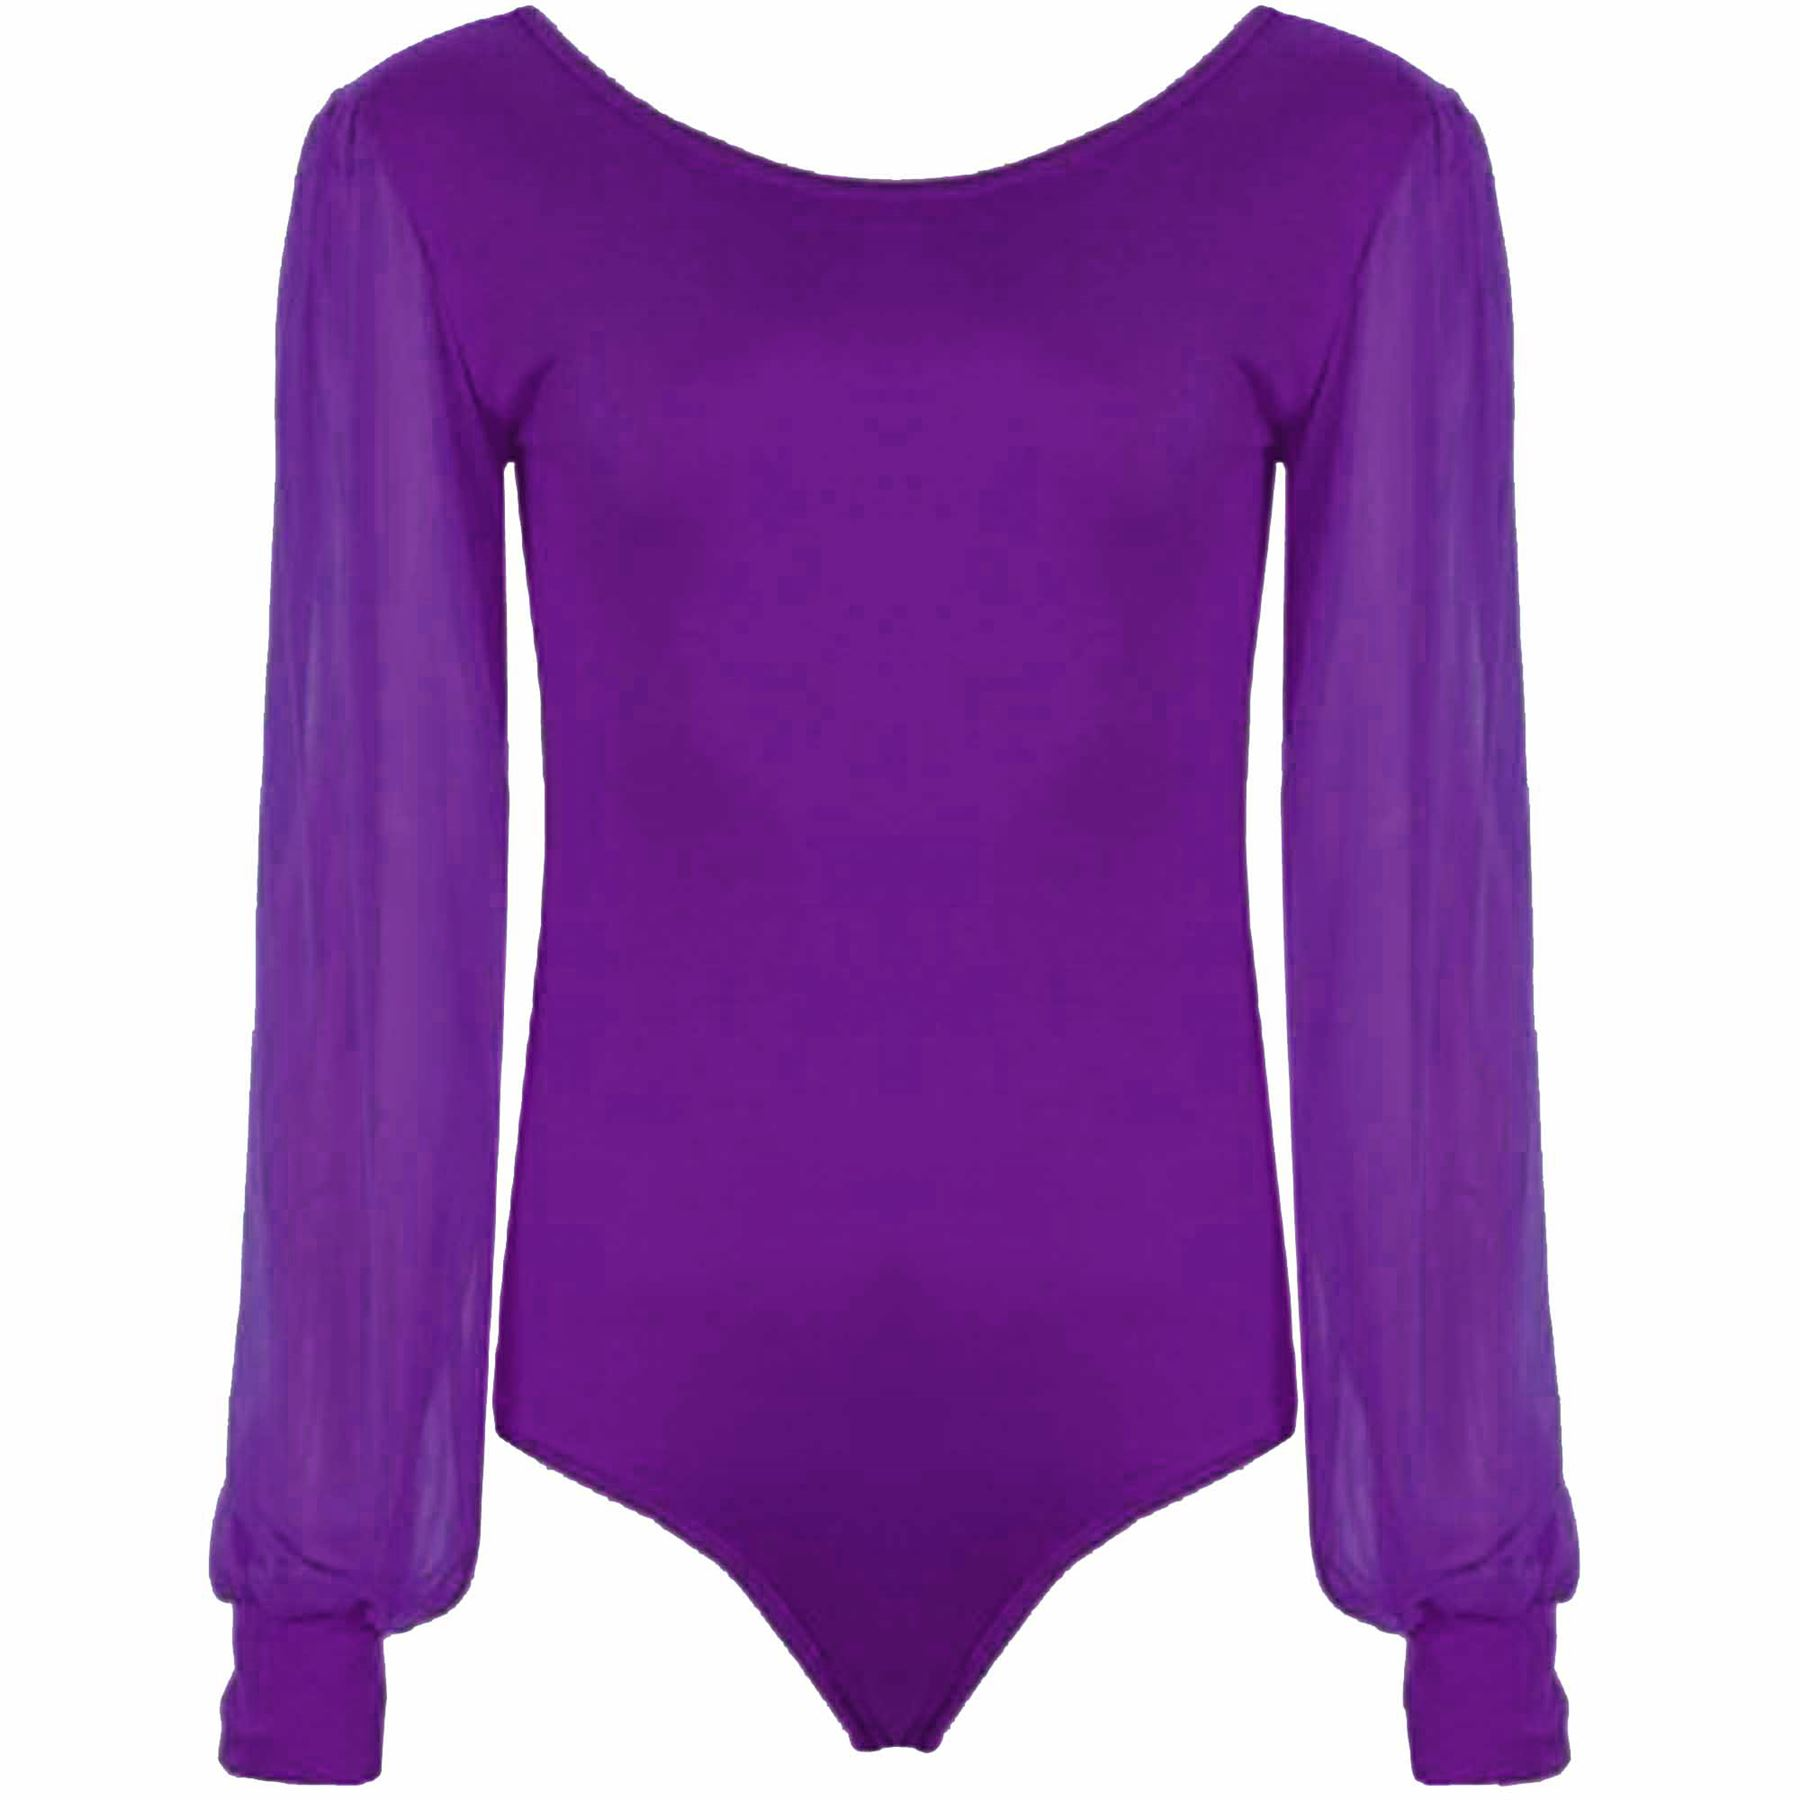 womens-Bodysuit-Chiffon-Sleeve-Leotard-Scoop-Neck-Long-Ladies-Sleeve-Size-8-22 thumbnail 6